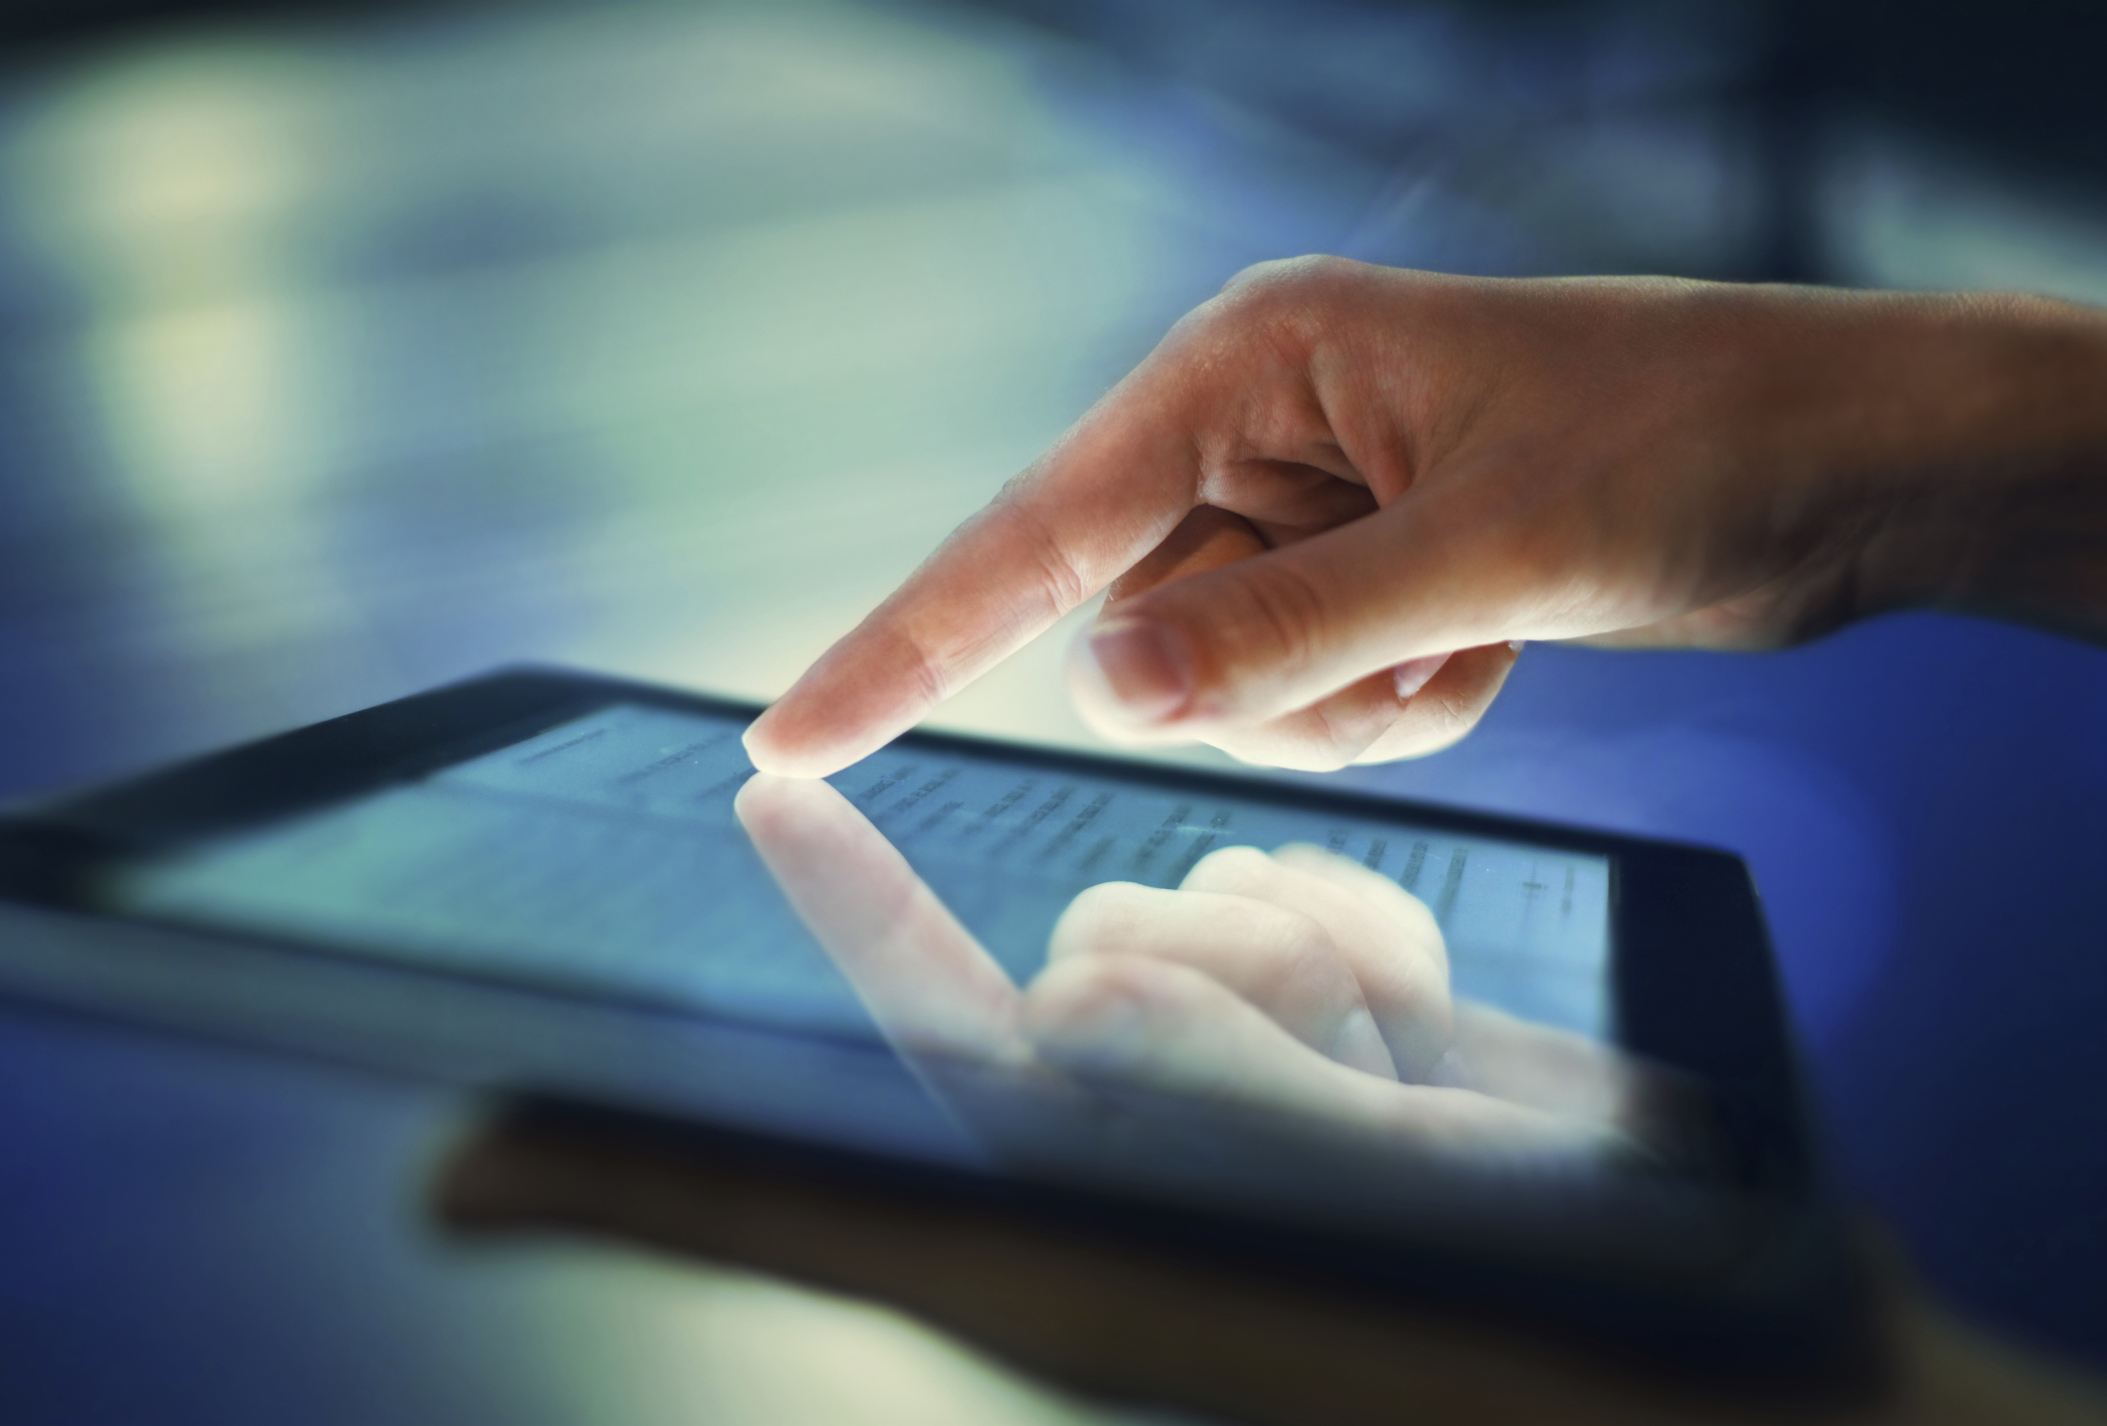 A finger pointing to content on an iPad